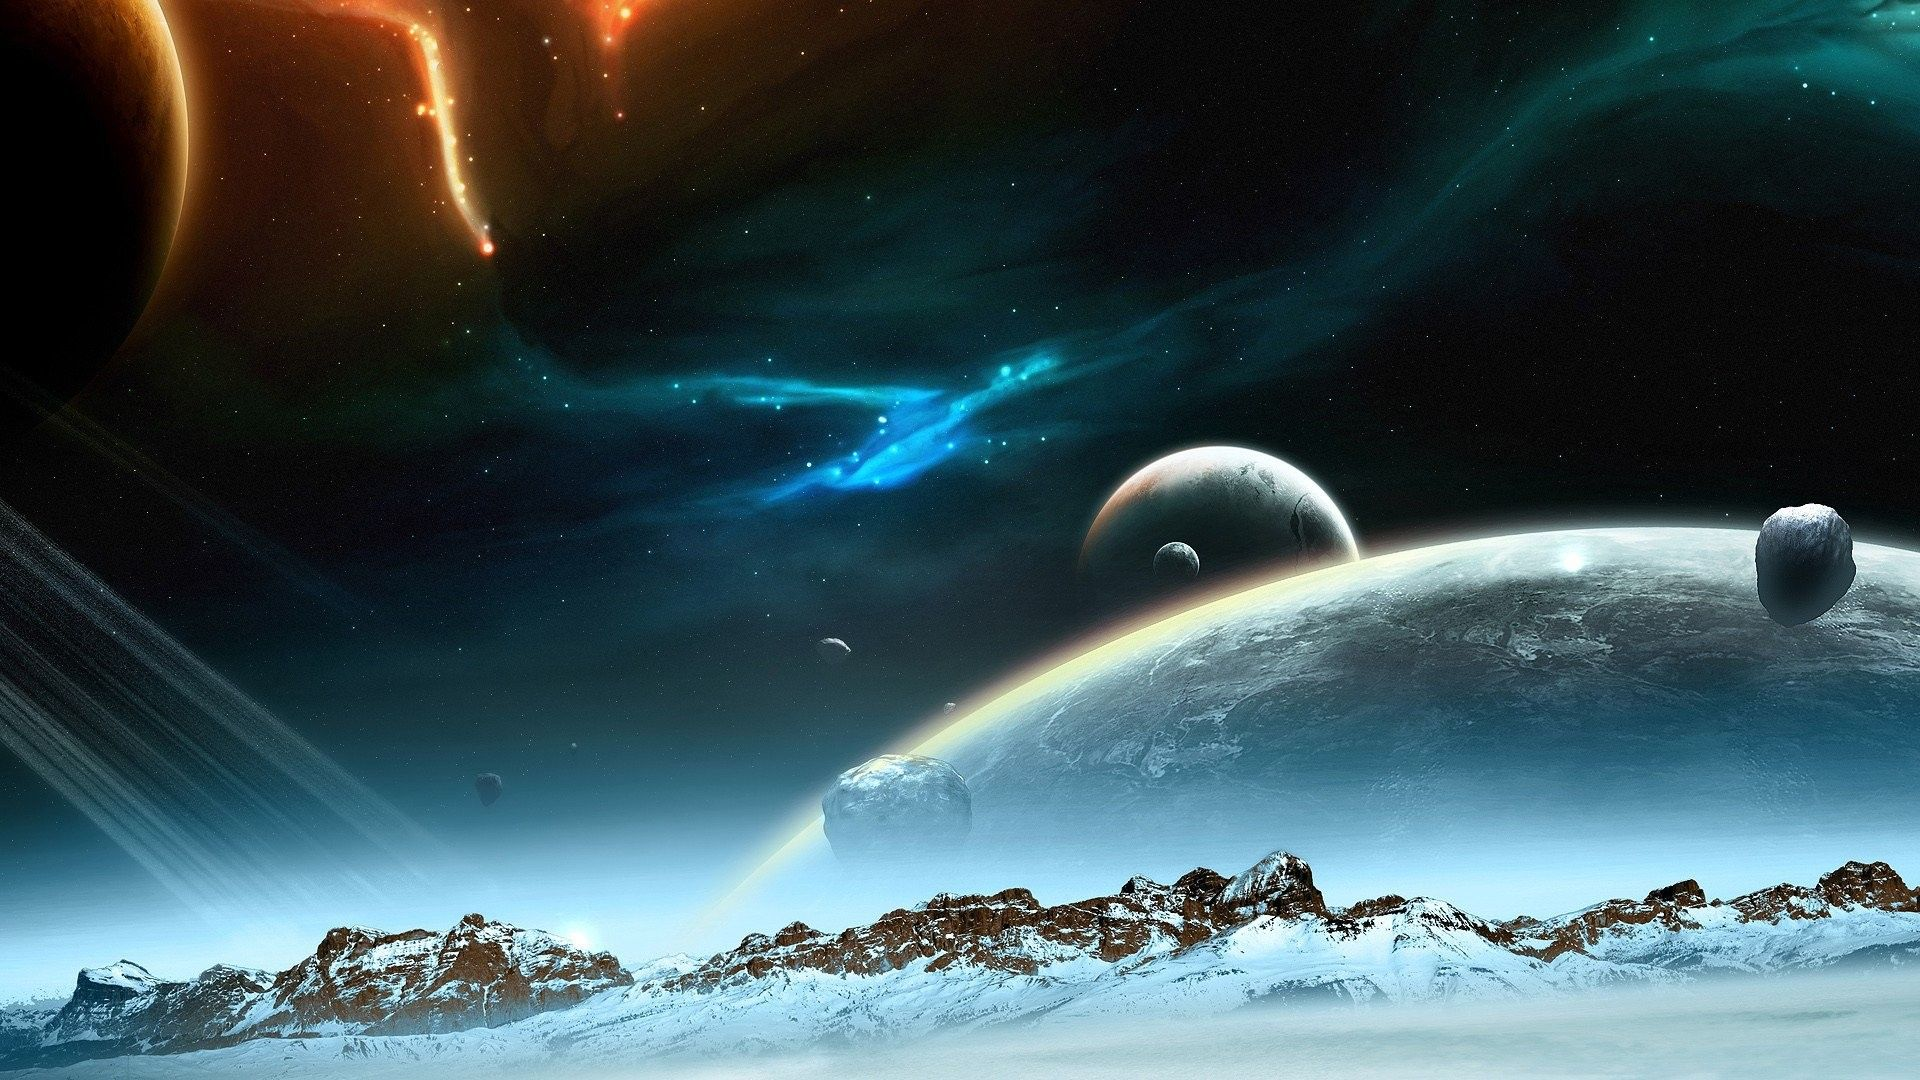 Space Planets Wallpapers Top Free Space Planets